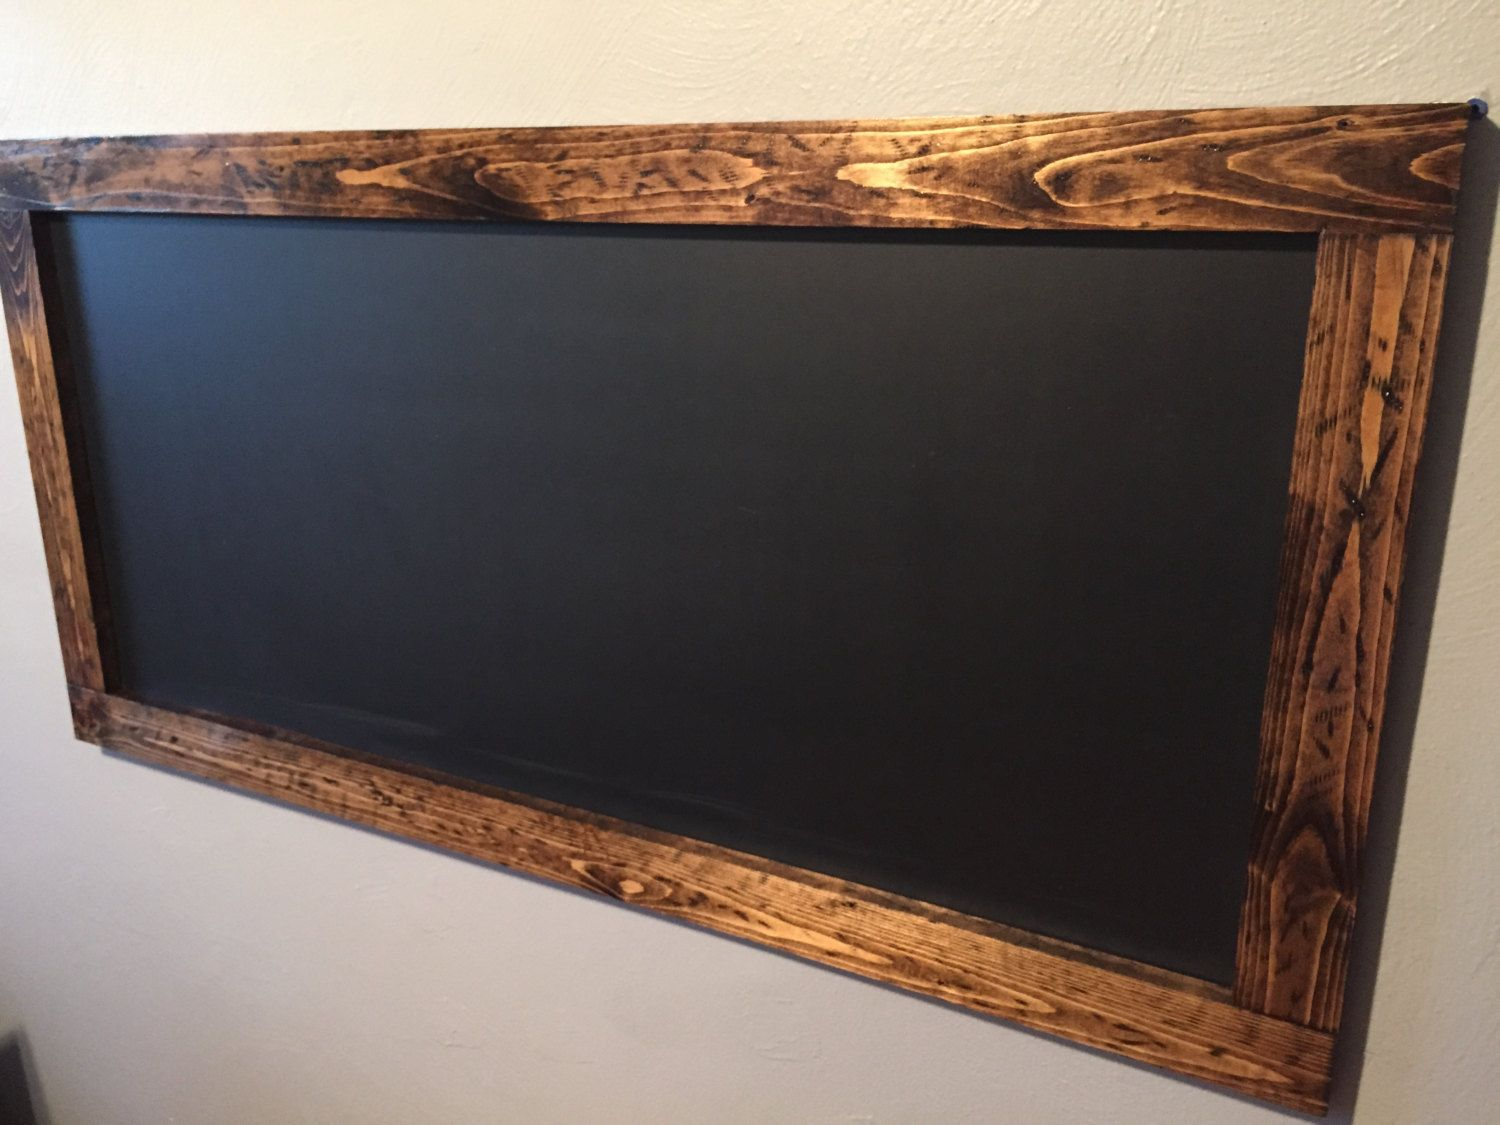 Decorative Chalkboard Signs Pinjakky Genova On Cheren  Pinterest